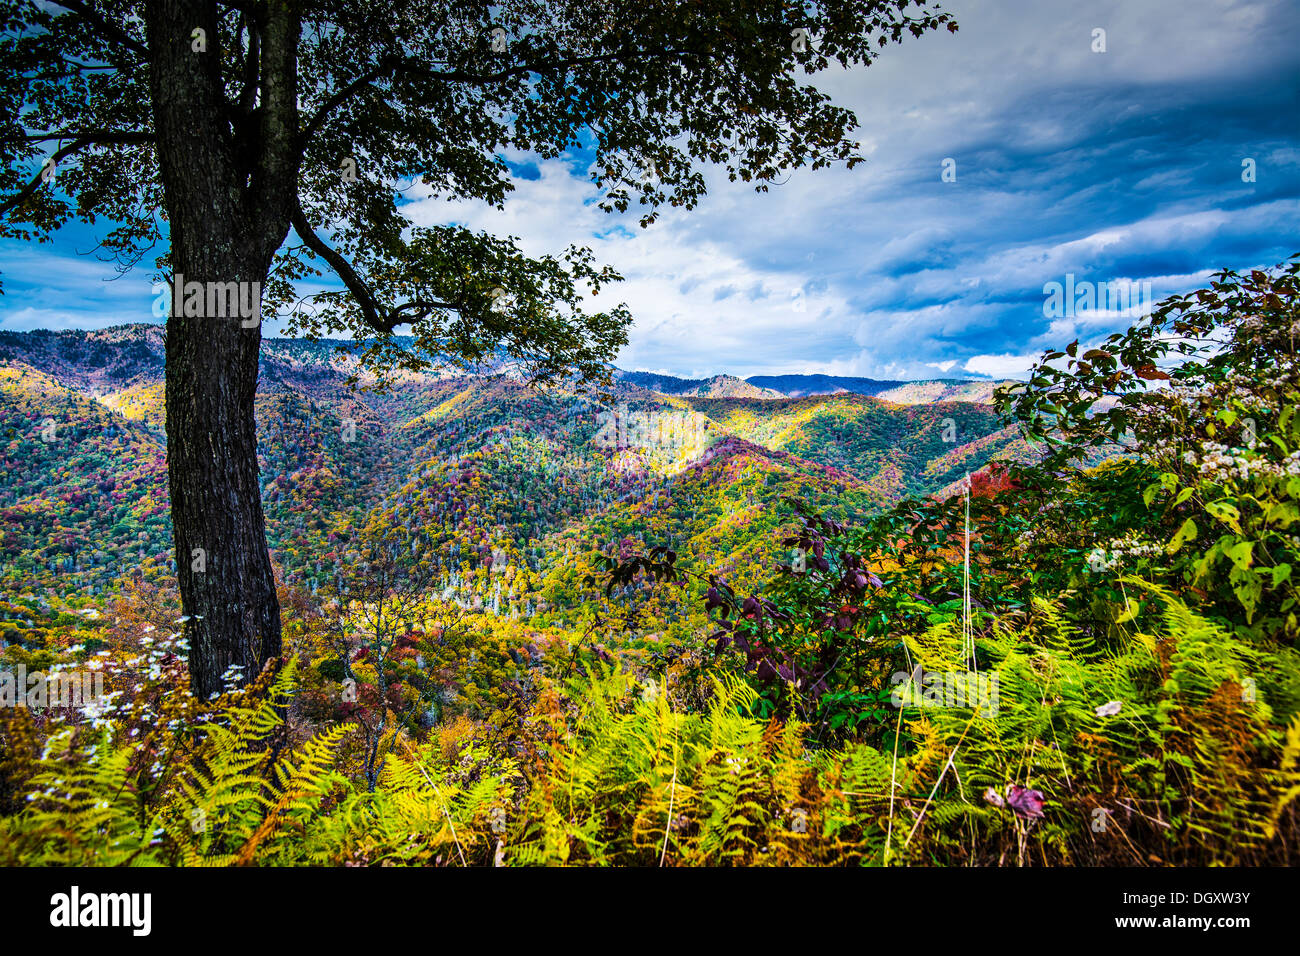 Autumn in the Smoky Mountains National Park. - Stock Image